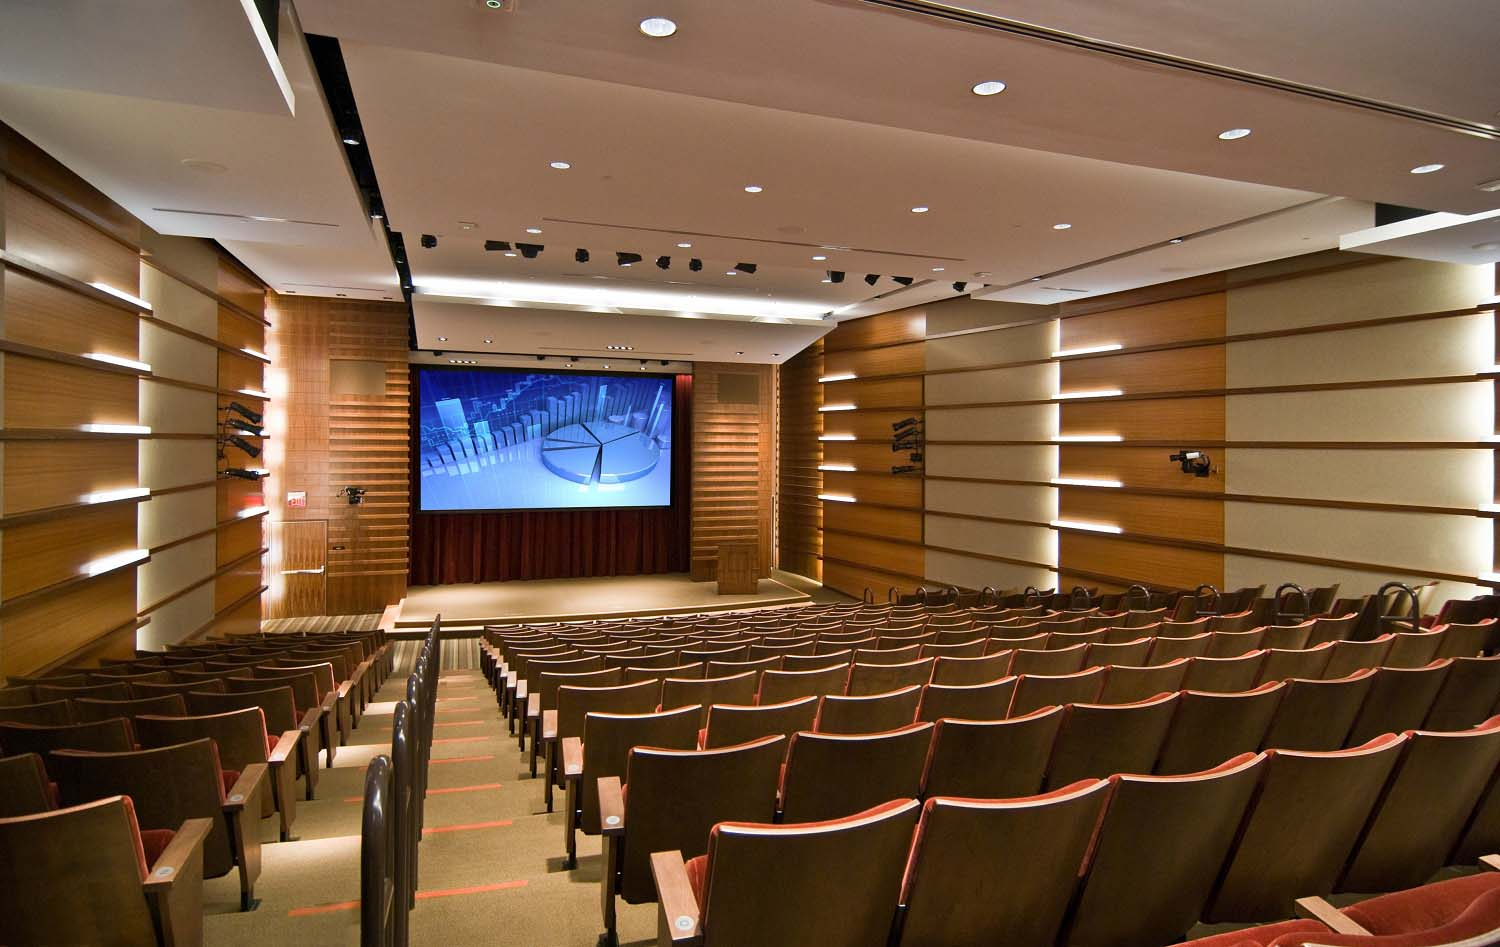 Large meeting spaces such as this auditorium use projection systems instead of a seried of display panels.